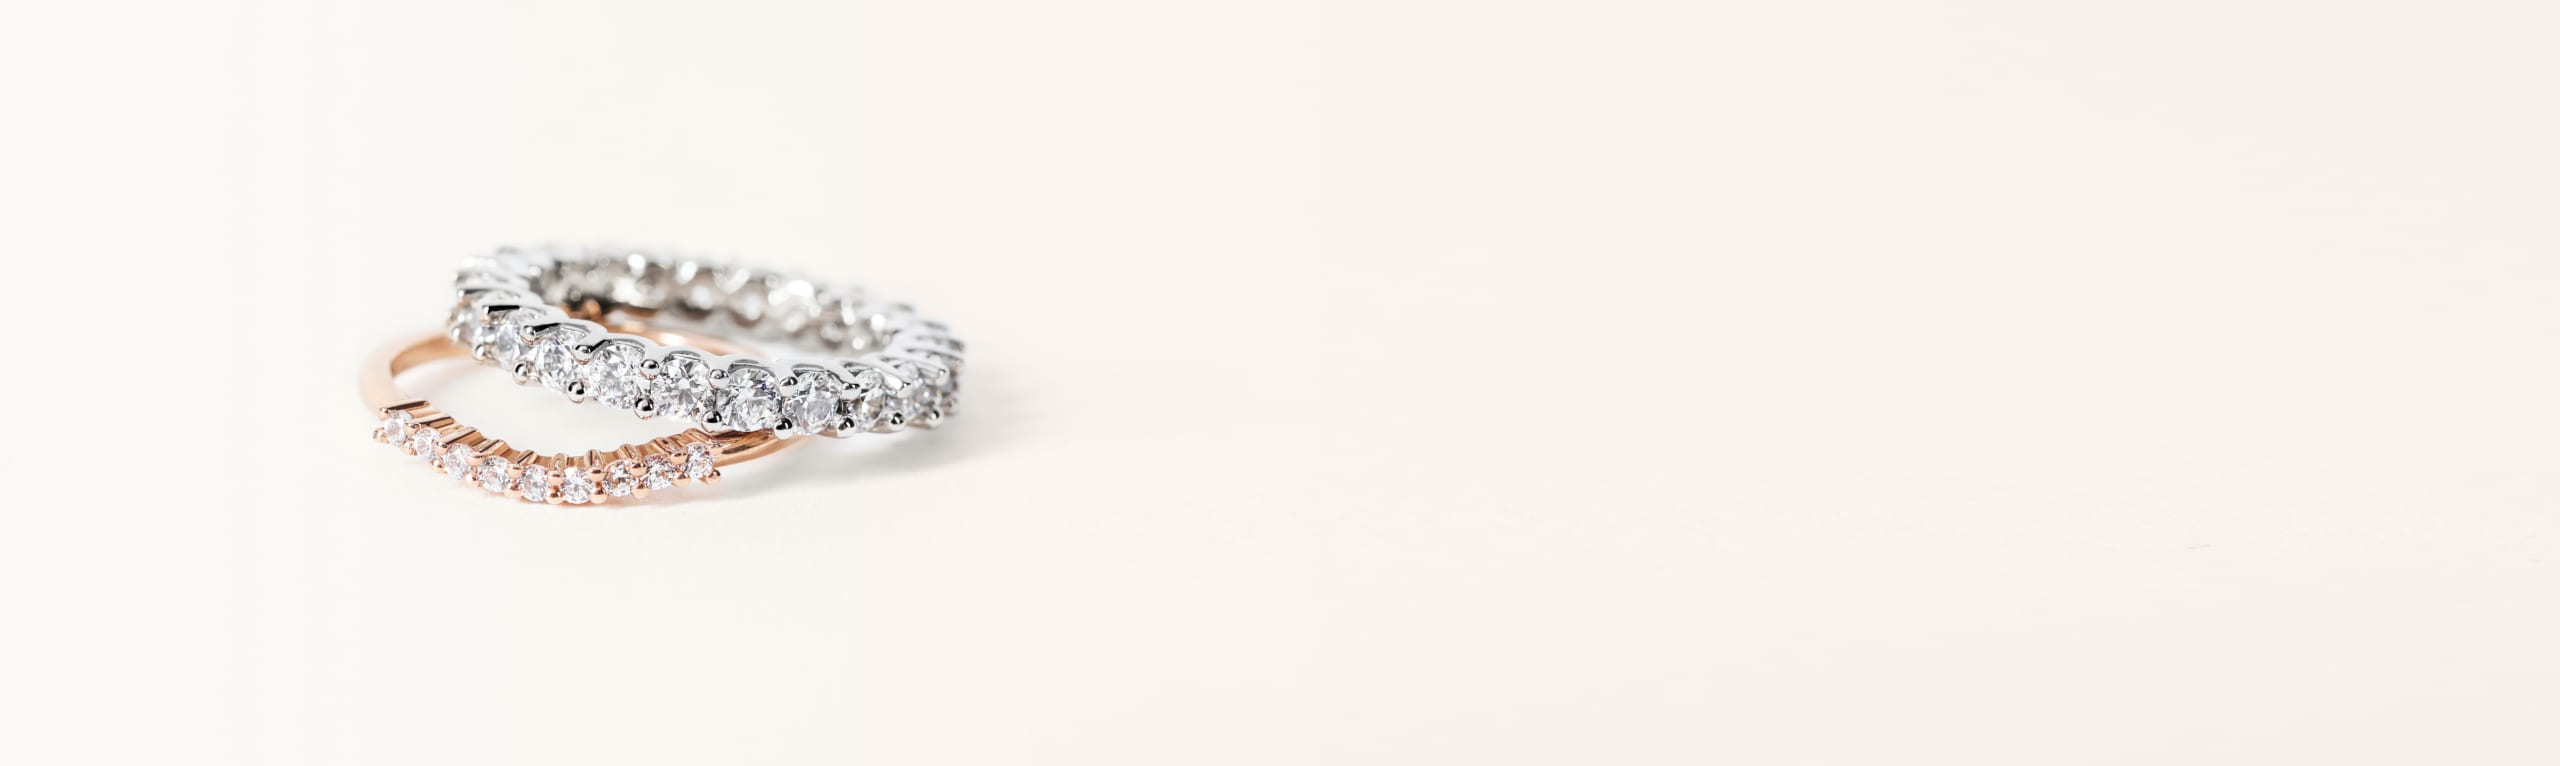 Nesting and Stacking Wedding Bands